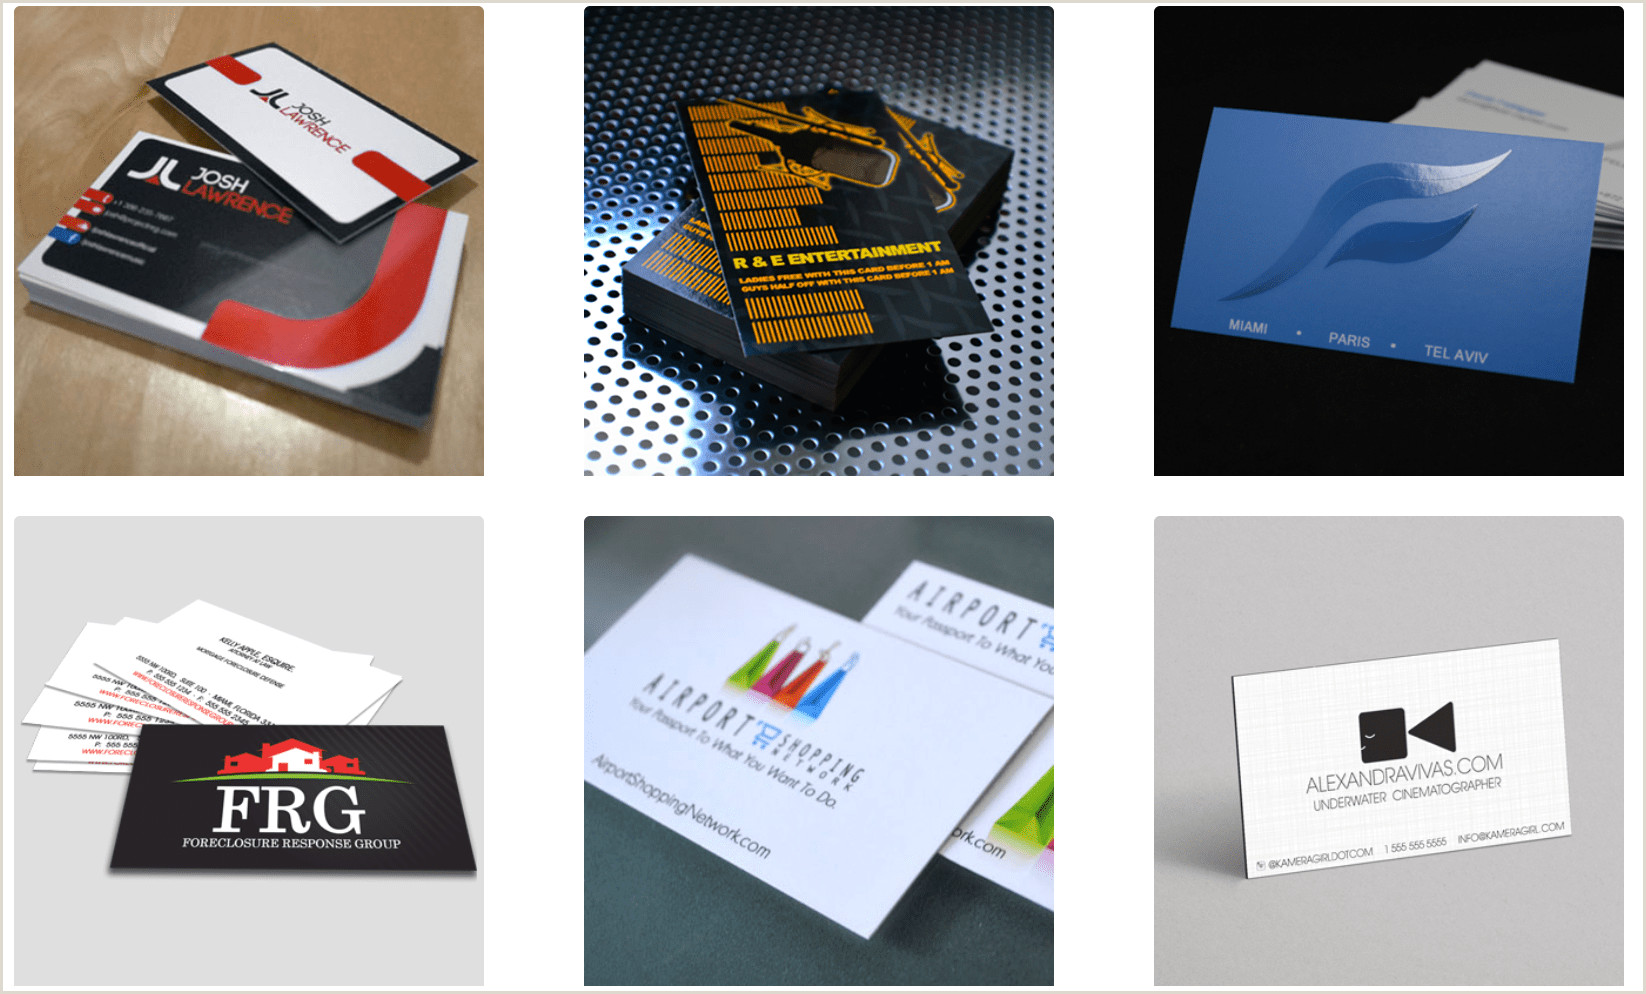 Best Business Cards Printing Service Best Business Card Printing Service Reviews Of 2020